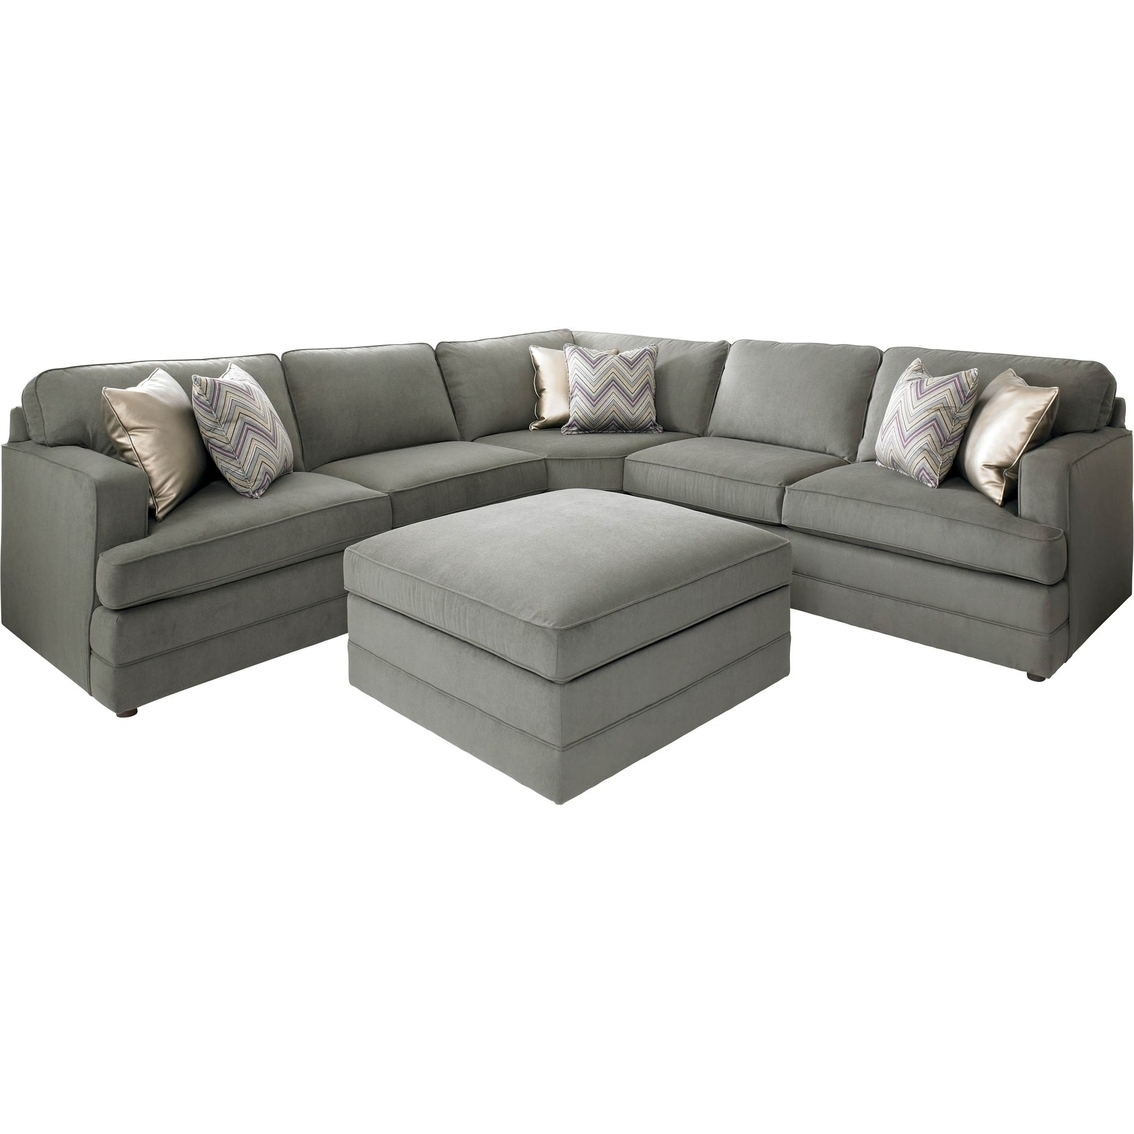 High Point Nc Sectional Sofas Regarding Most Current Bassett Dalton L Shaped Sectional Sofa With Ottoman (View 6 of 20)